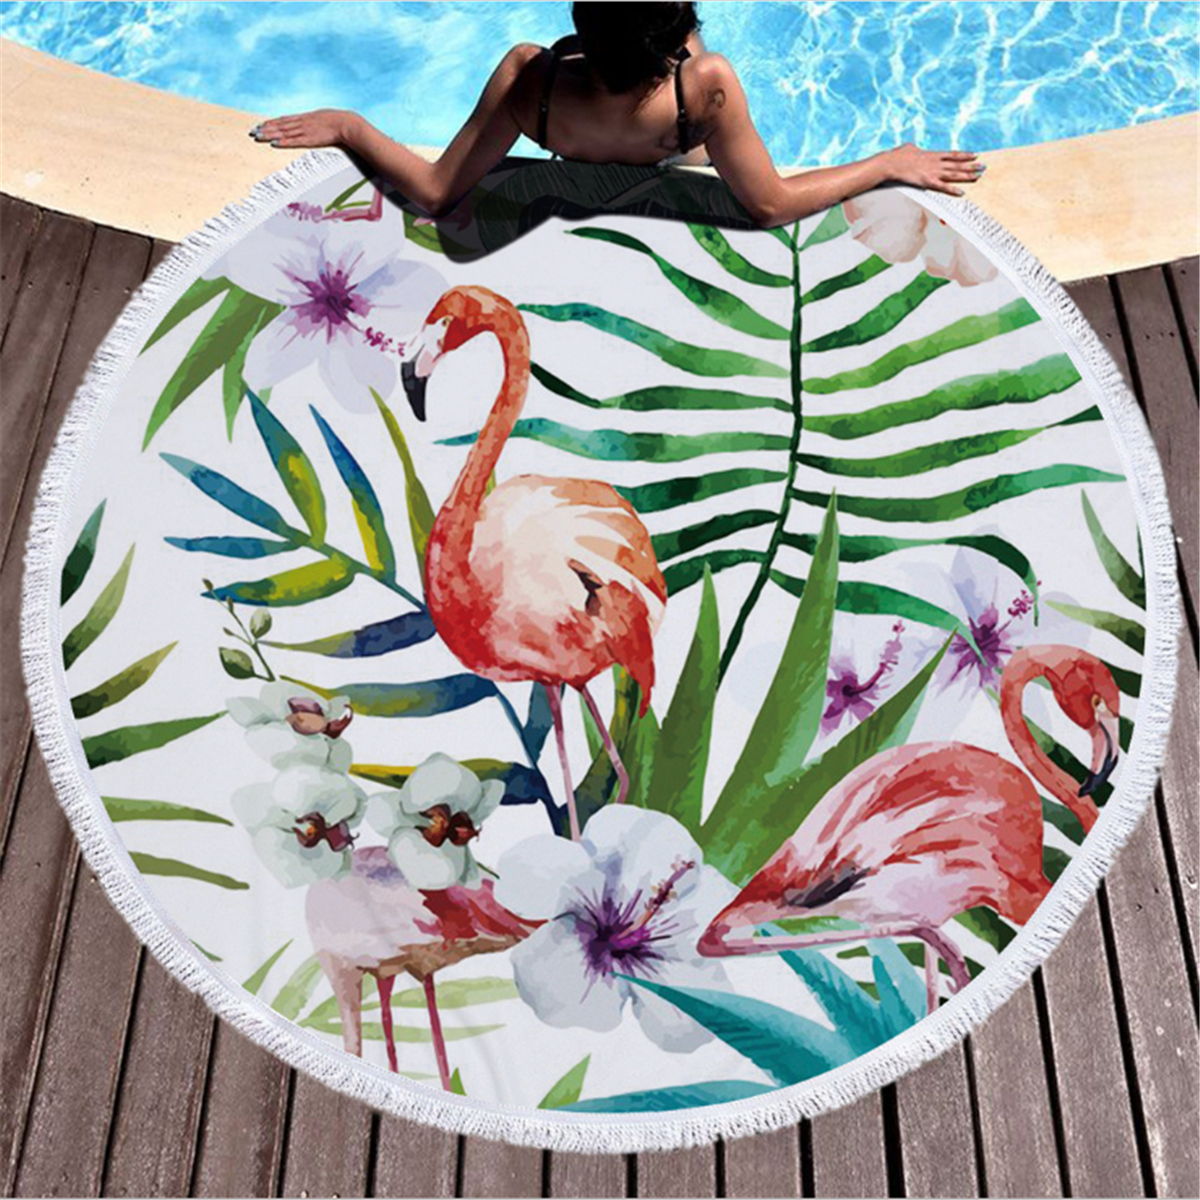 boh me flamant rose tapisserie mandala jet de lit tenture murale tapis de plage ebay. Black Bedroom Furniture Sets. Home Design Ideas